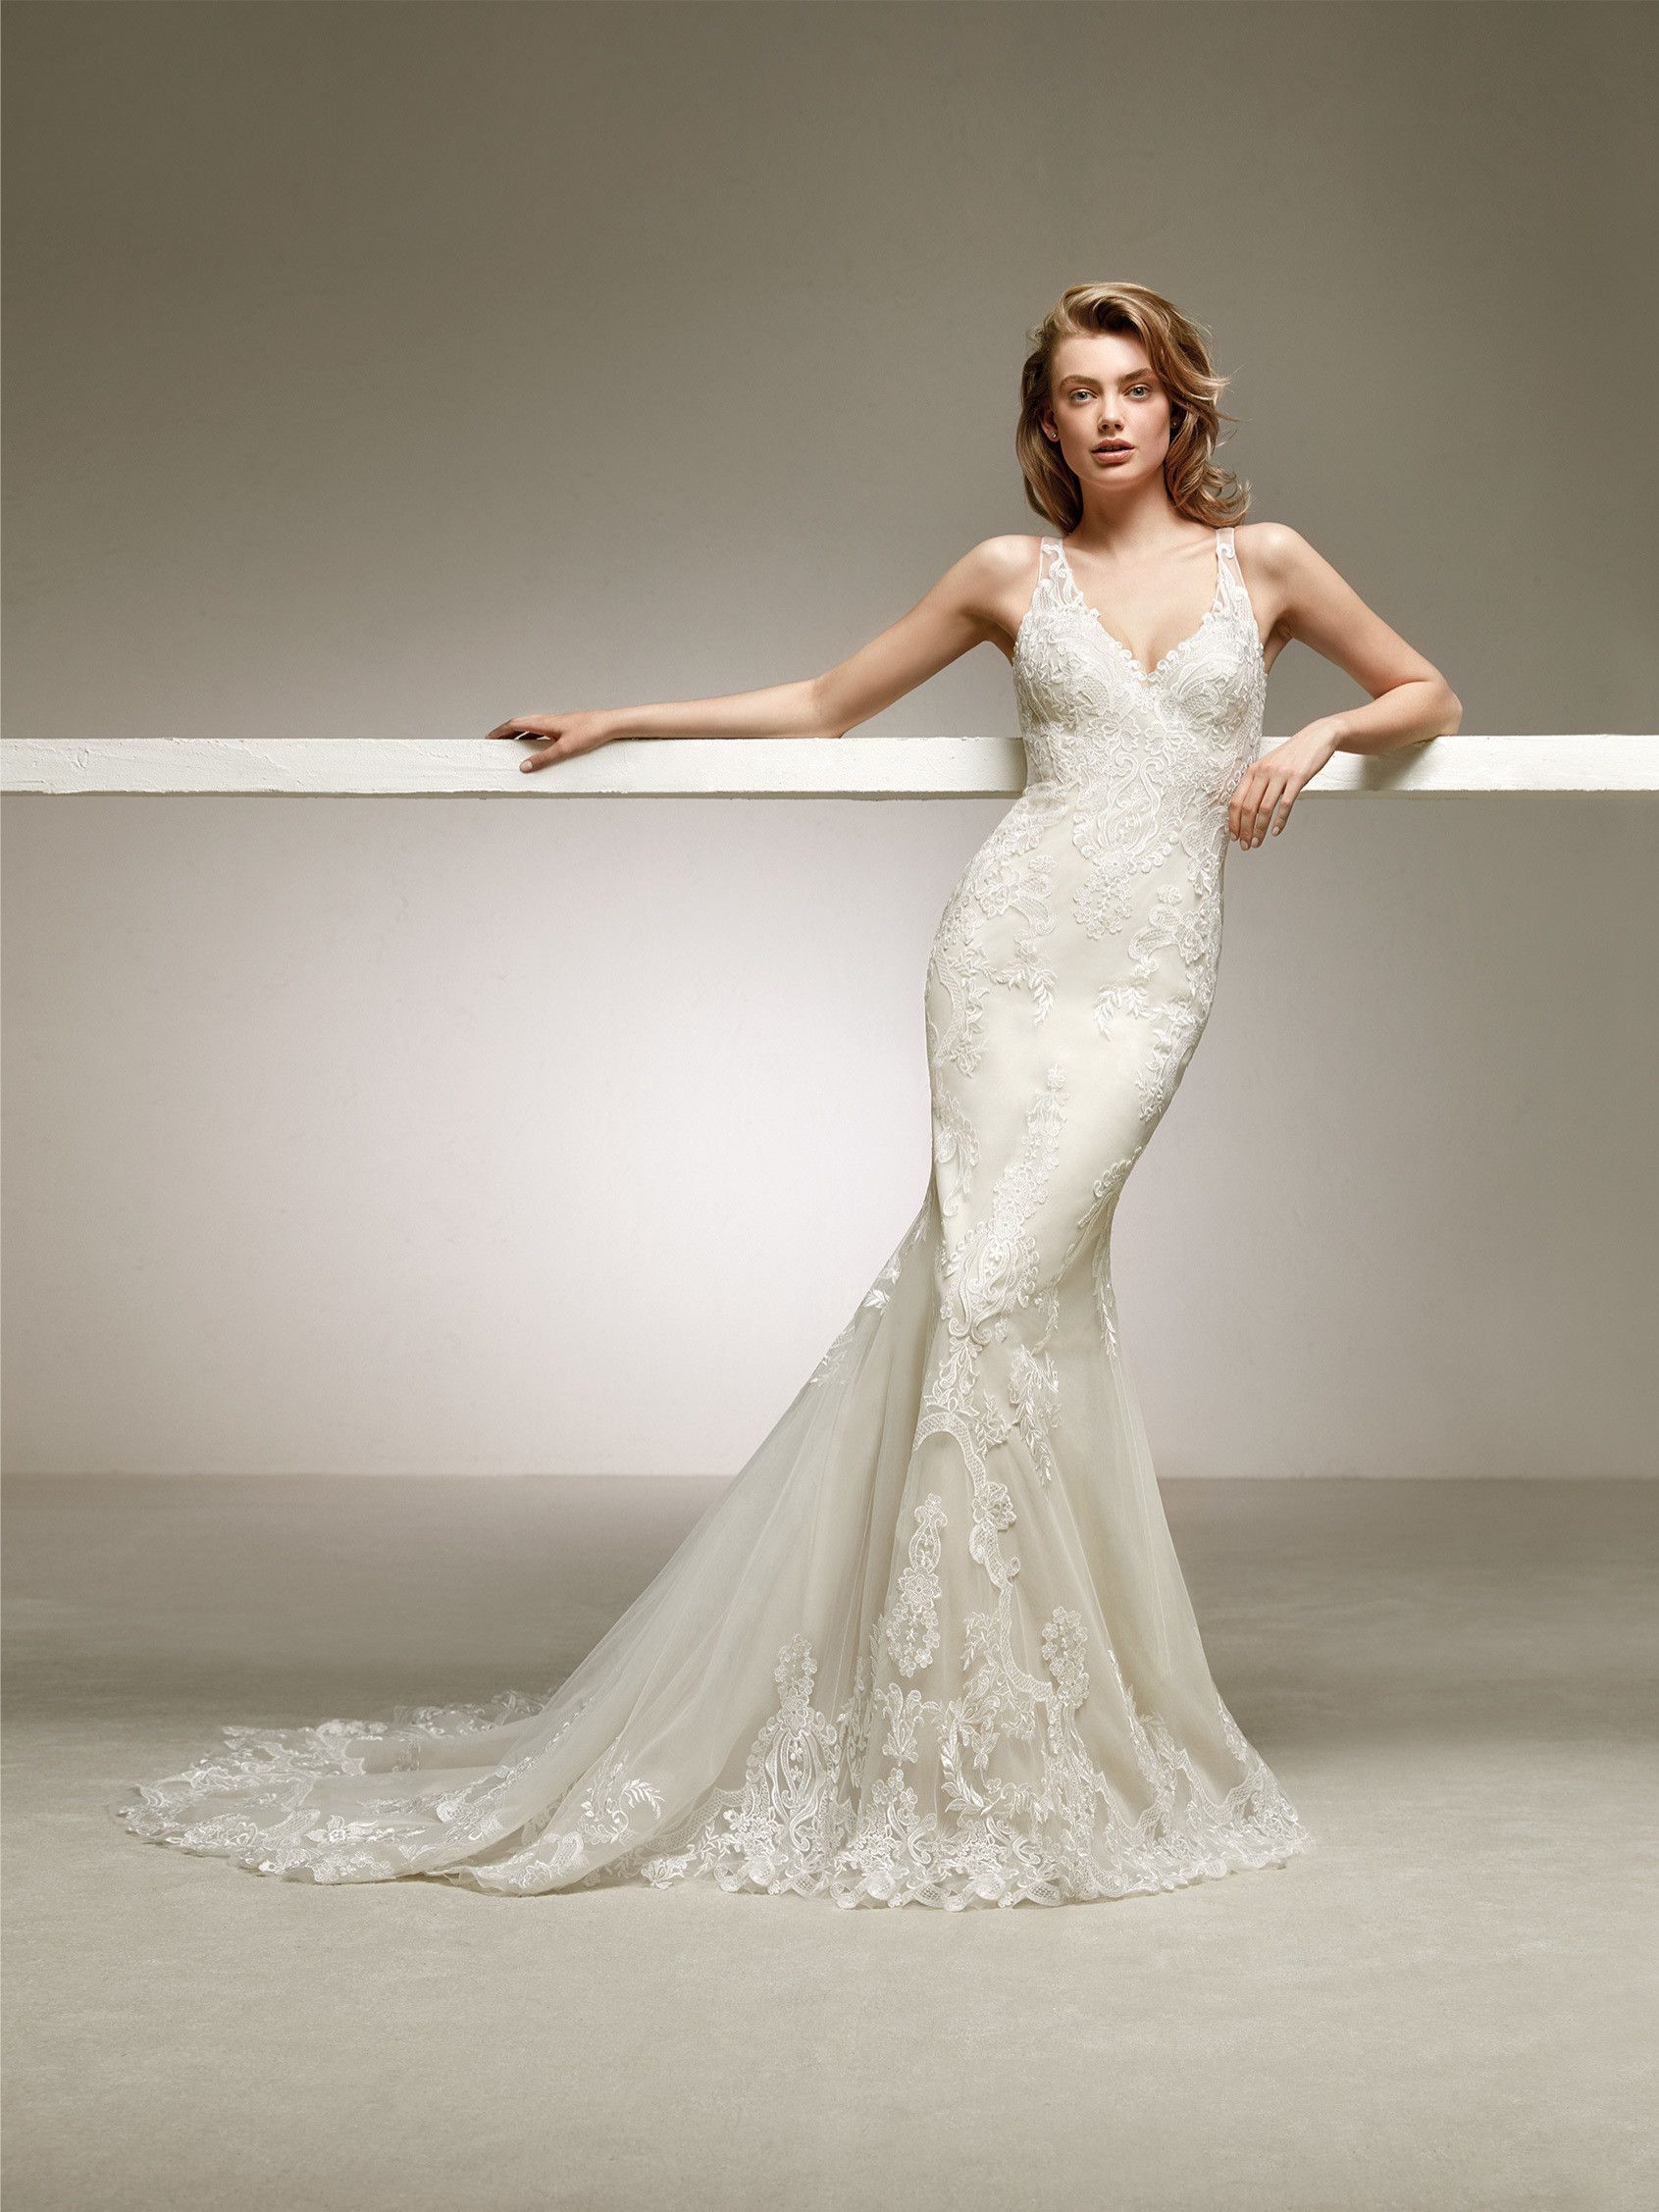 Low Backed Mermaid Wedding Dress With An Embroidered Tulle Placement That Stands Out